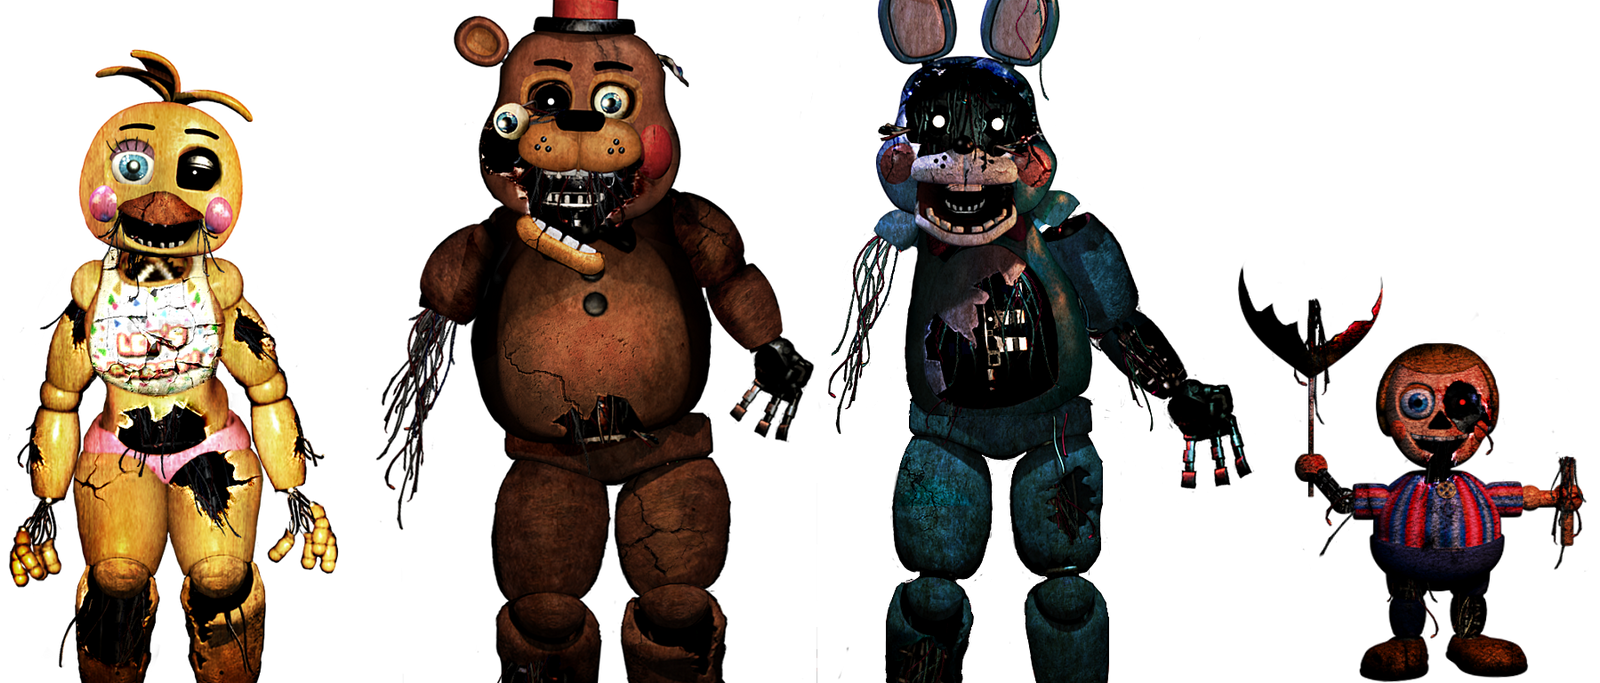 Five nights at candy scratch five night s at candy s on scratch by